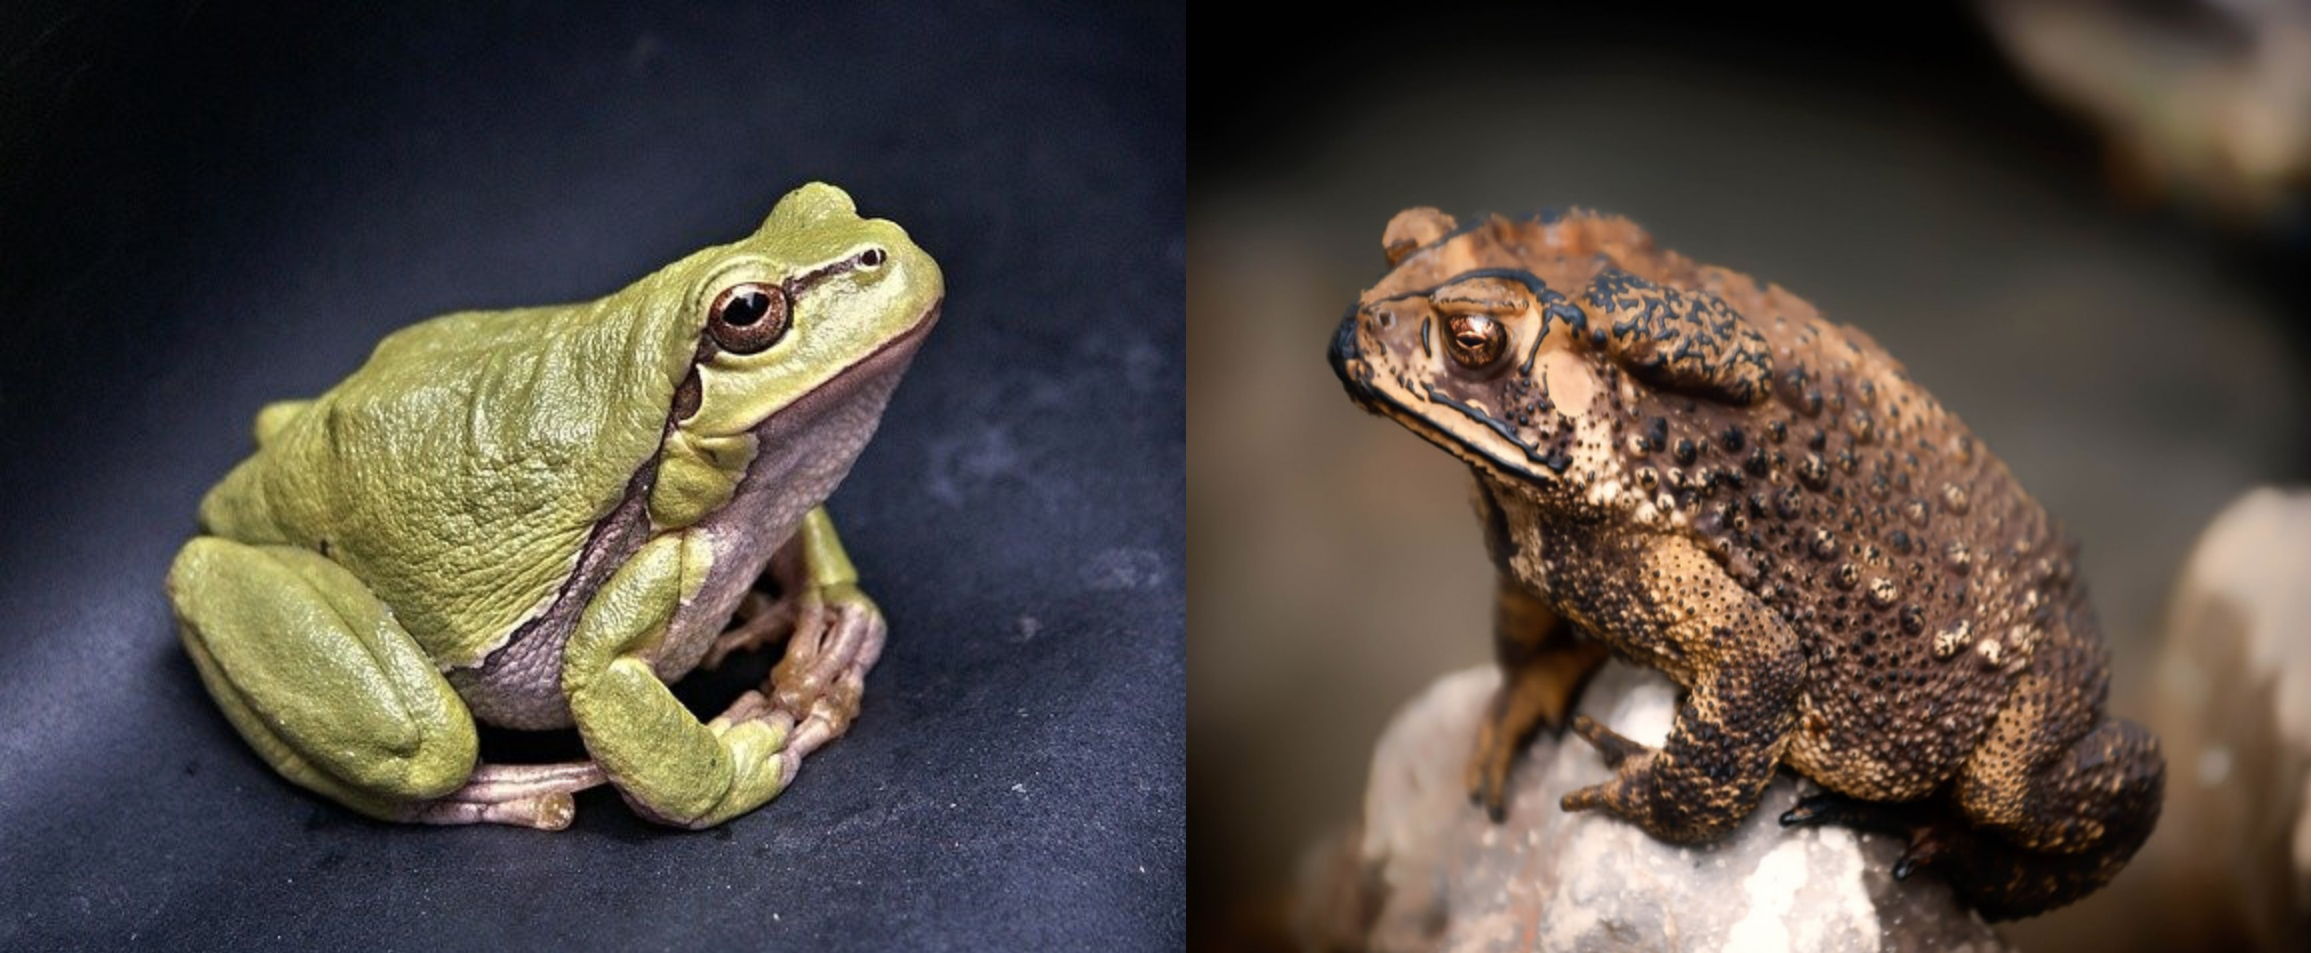 What Is the Difference Between a Frog and a Toad? - Frog and Toad facing each other